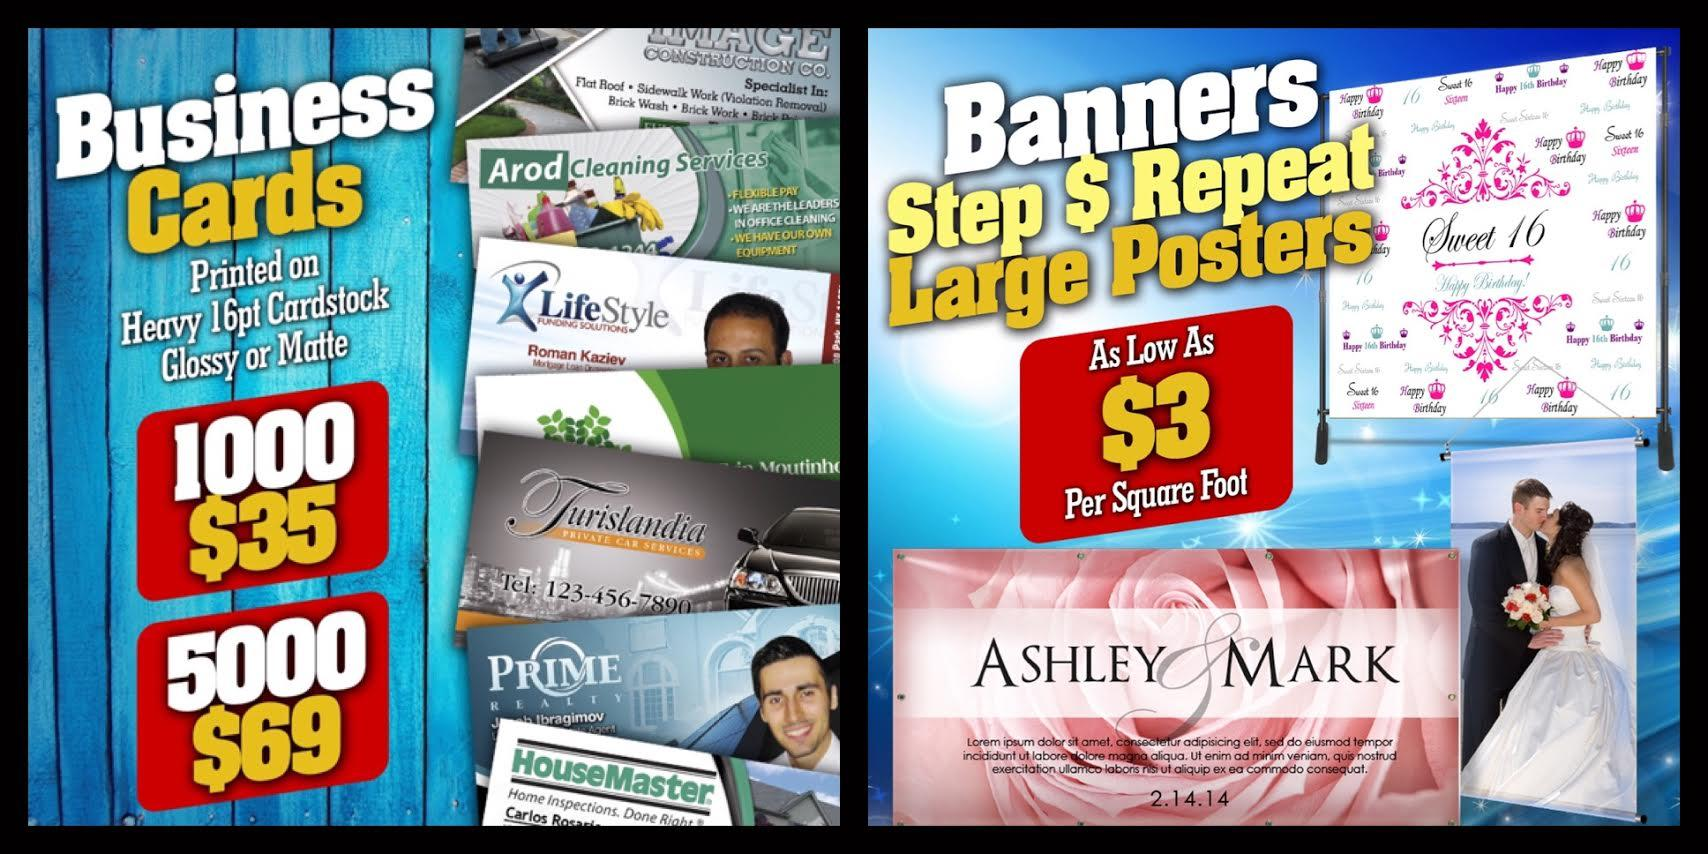 1000) business cards $35 - (5000) 4x6 postcards $125 - Banners $3 ...